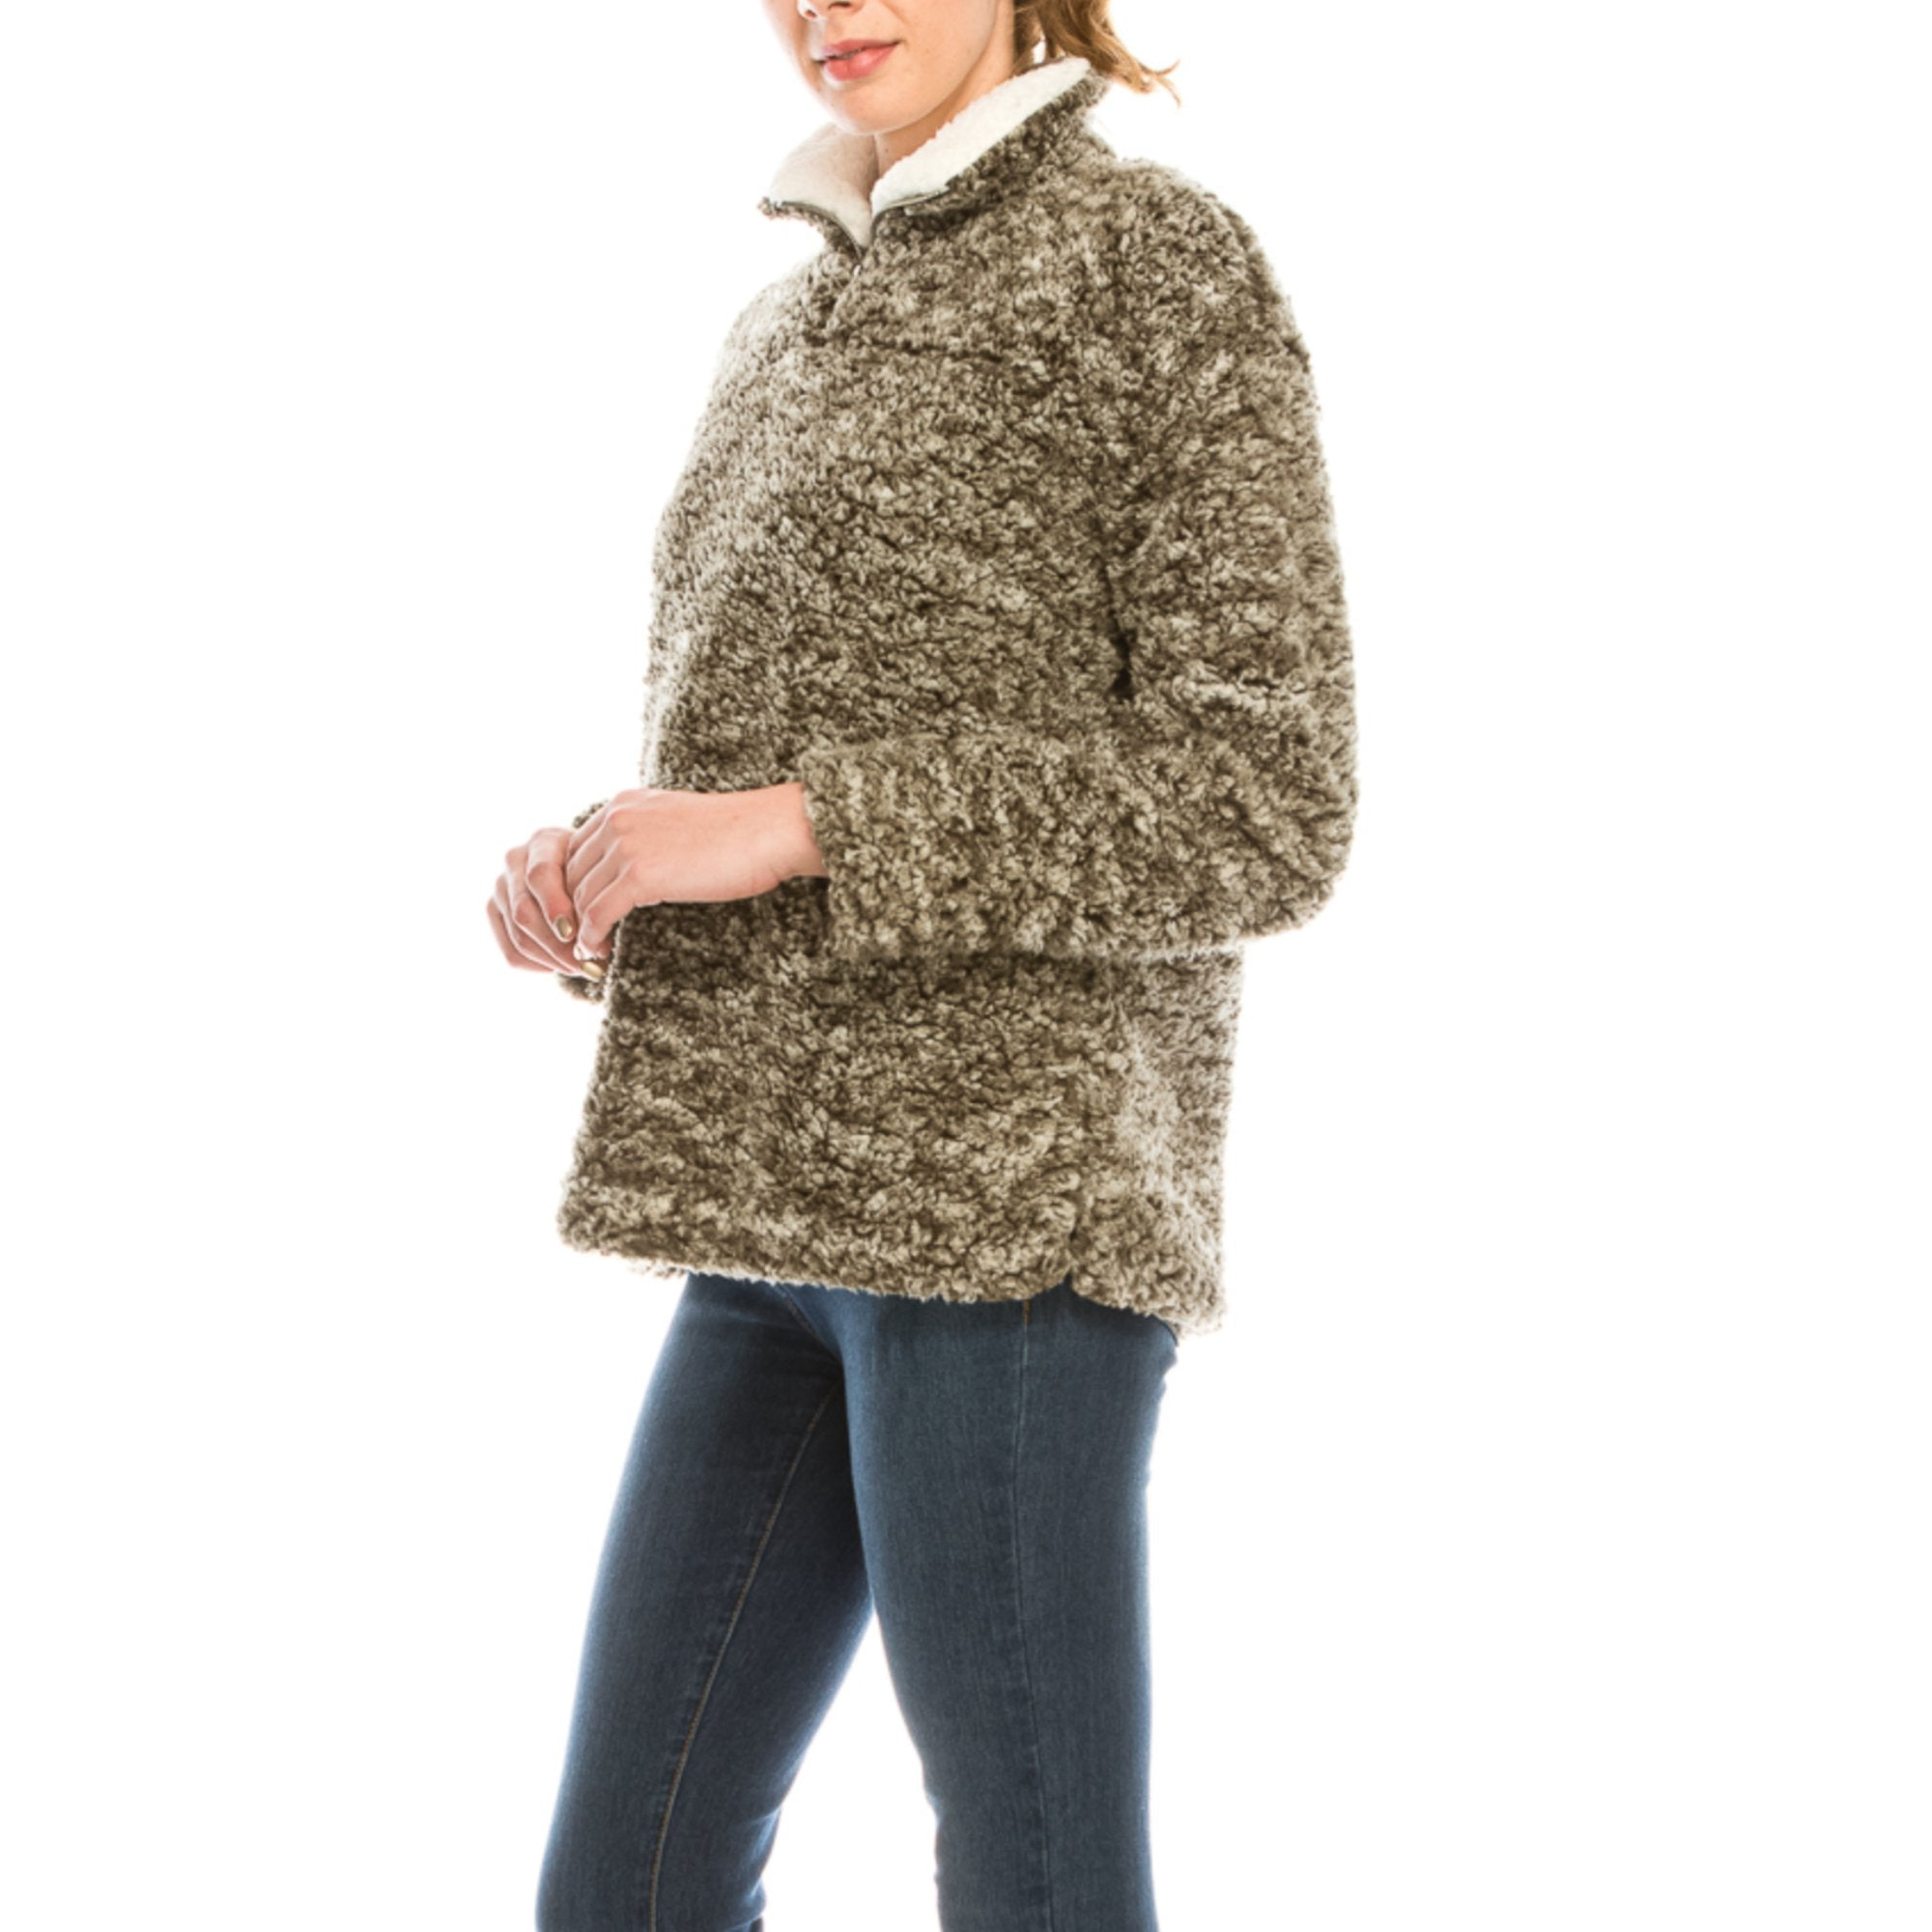 Urban Diction Olive Sherpa Pullover - 40% OFF